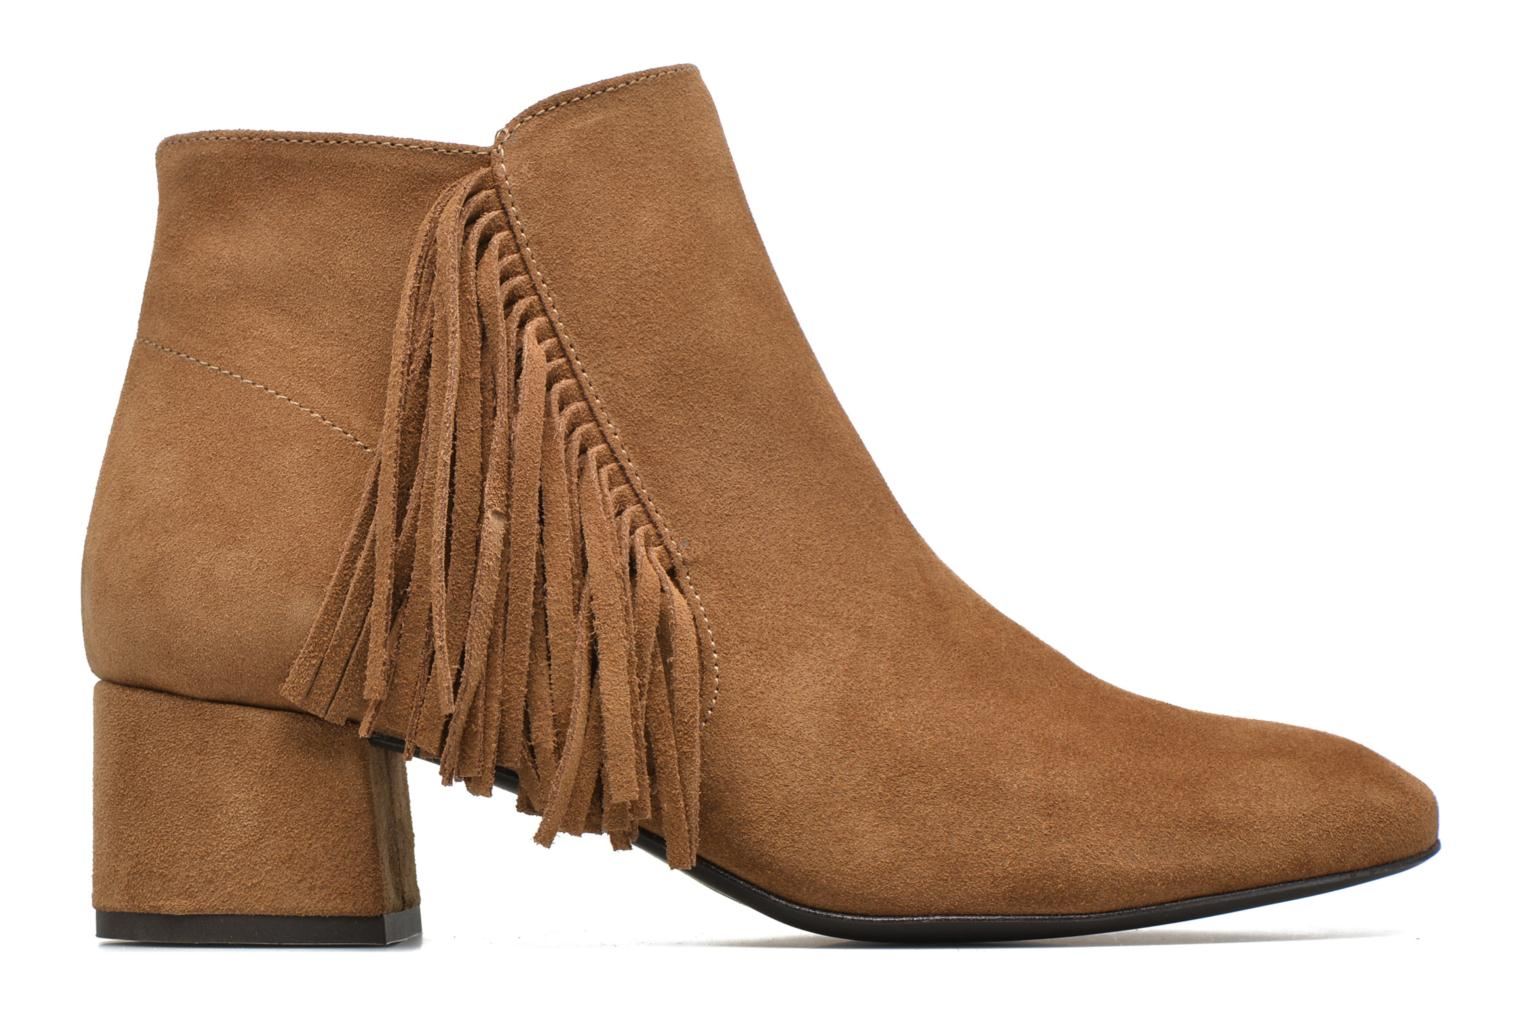 Bottines et boots Made by SARENZA See Ya Topanga #9 Marron vue détail/paire